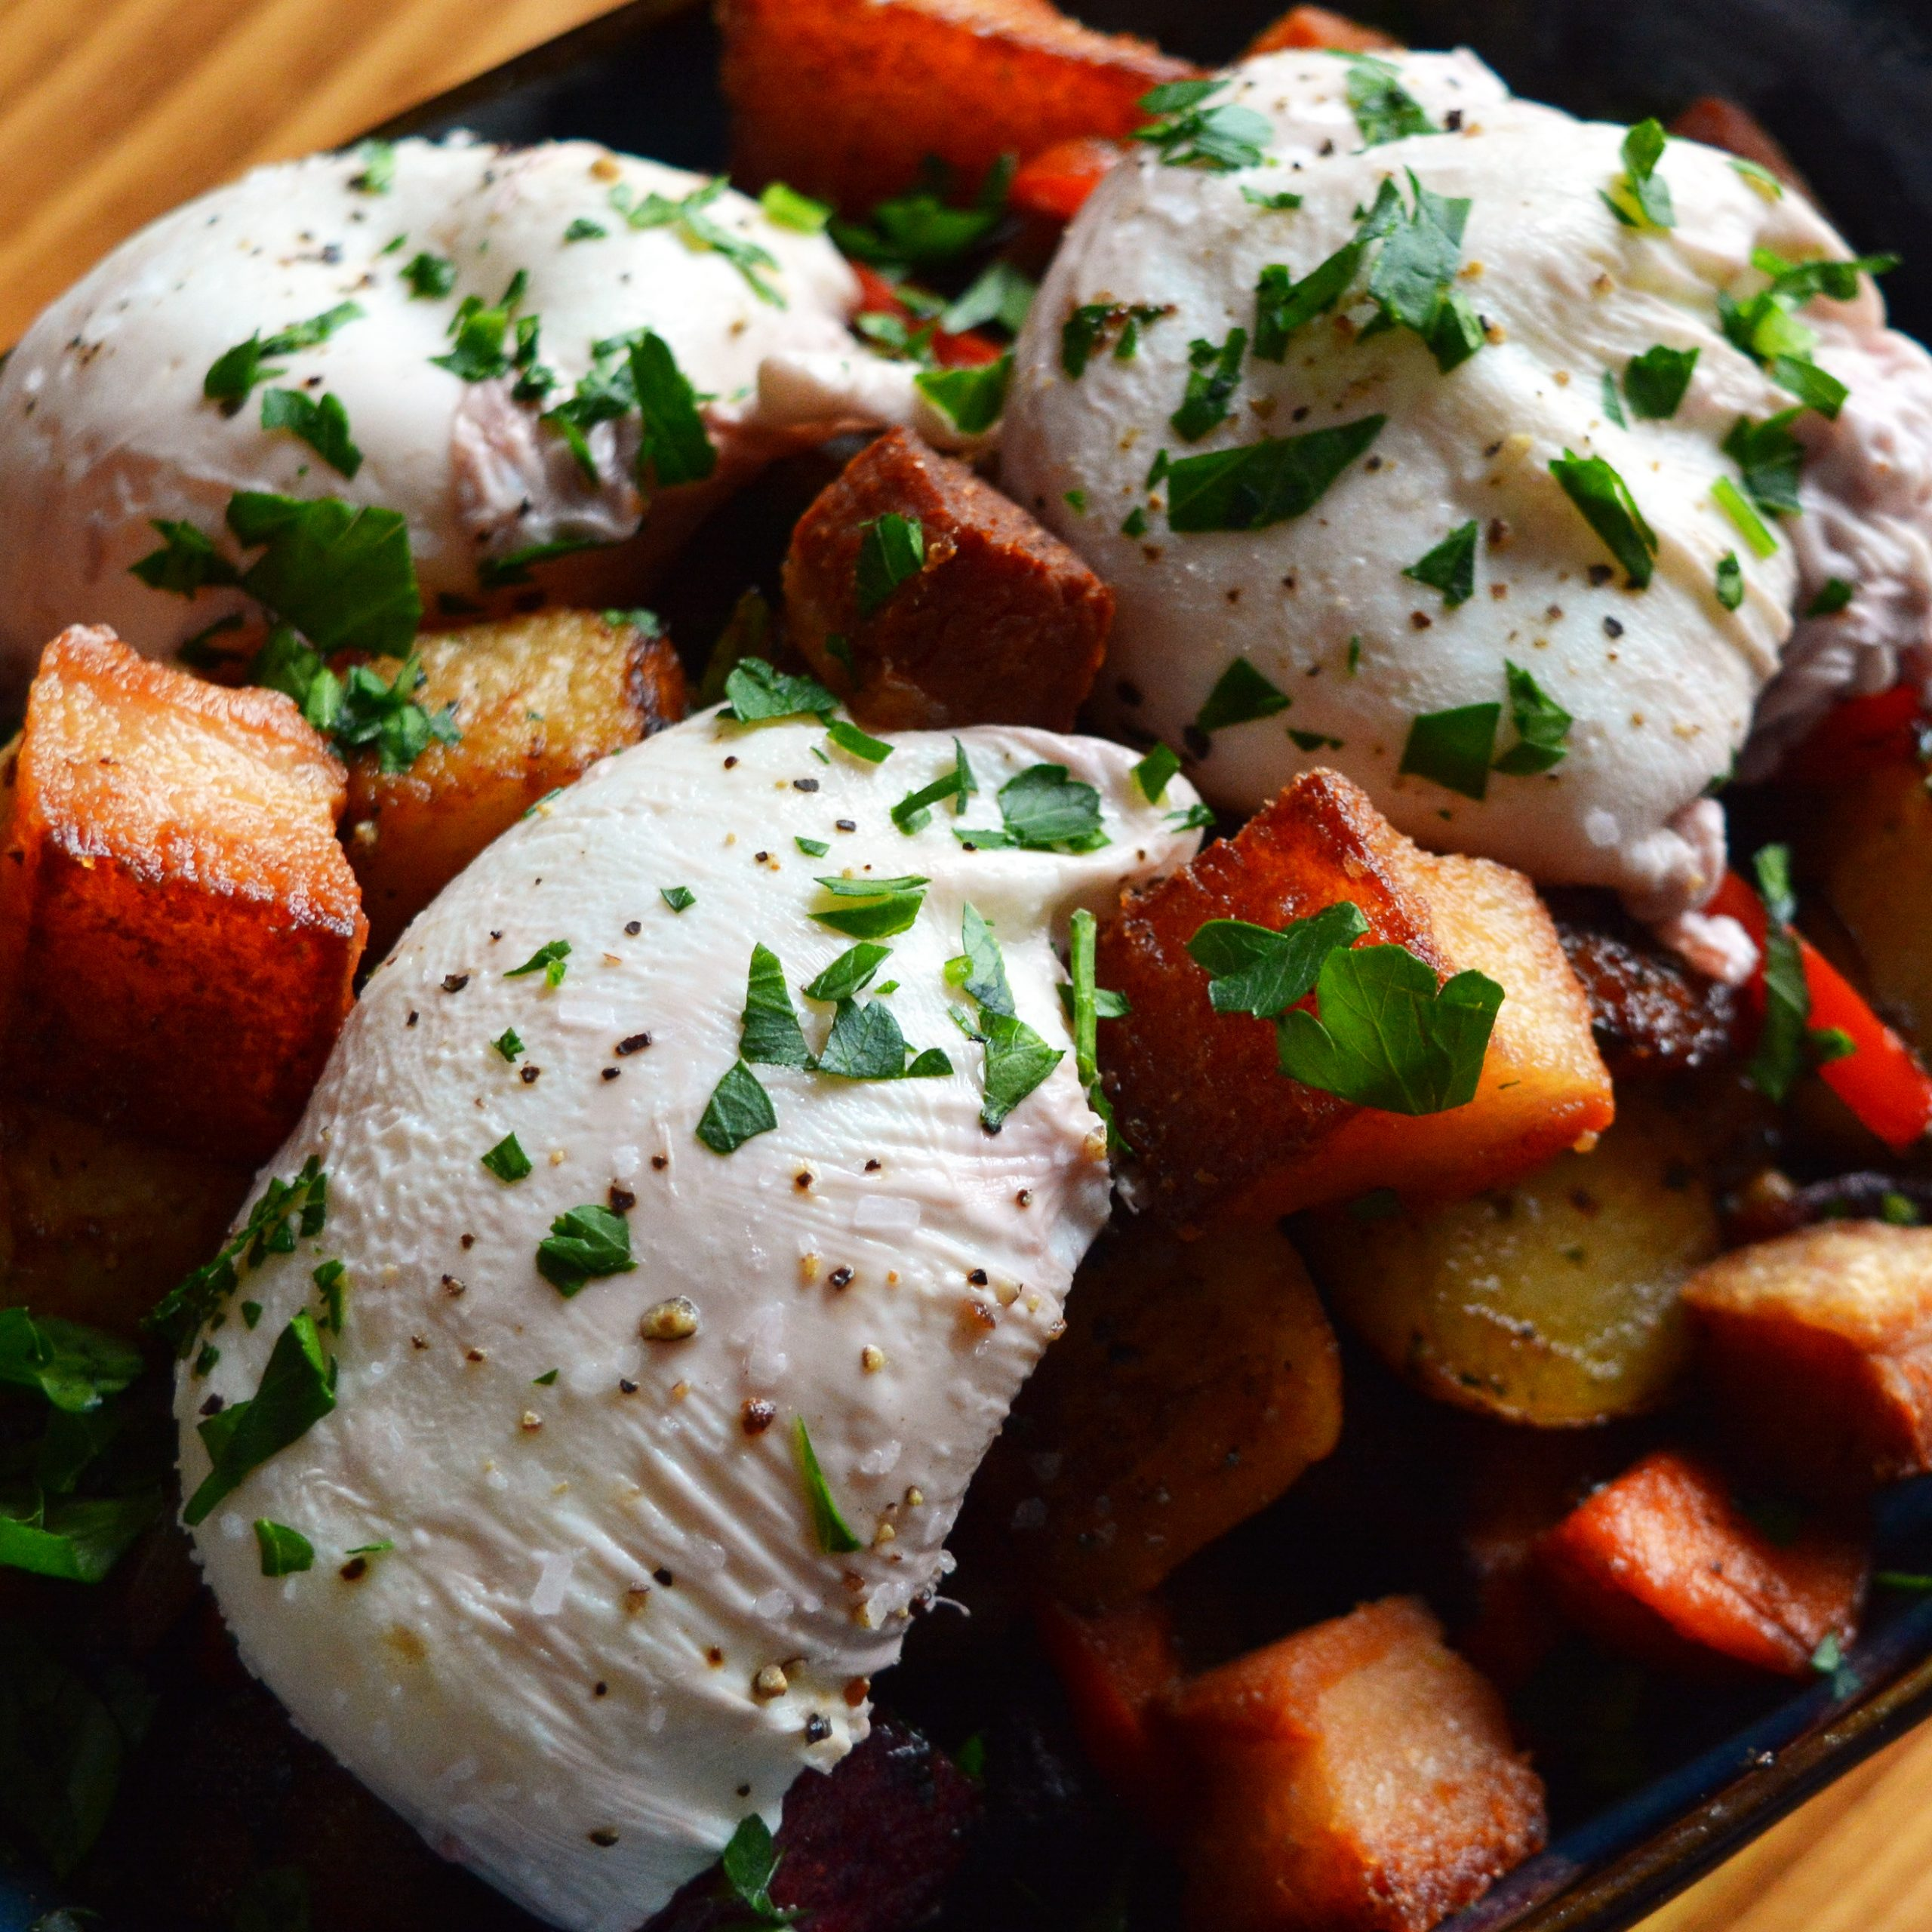 Three poached eggs over a bed of crispy, fried potatoes